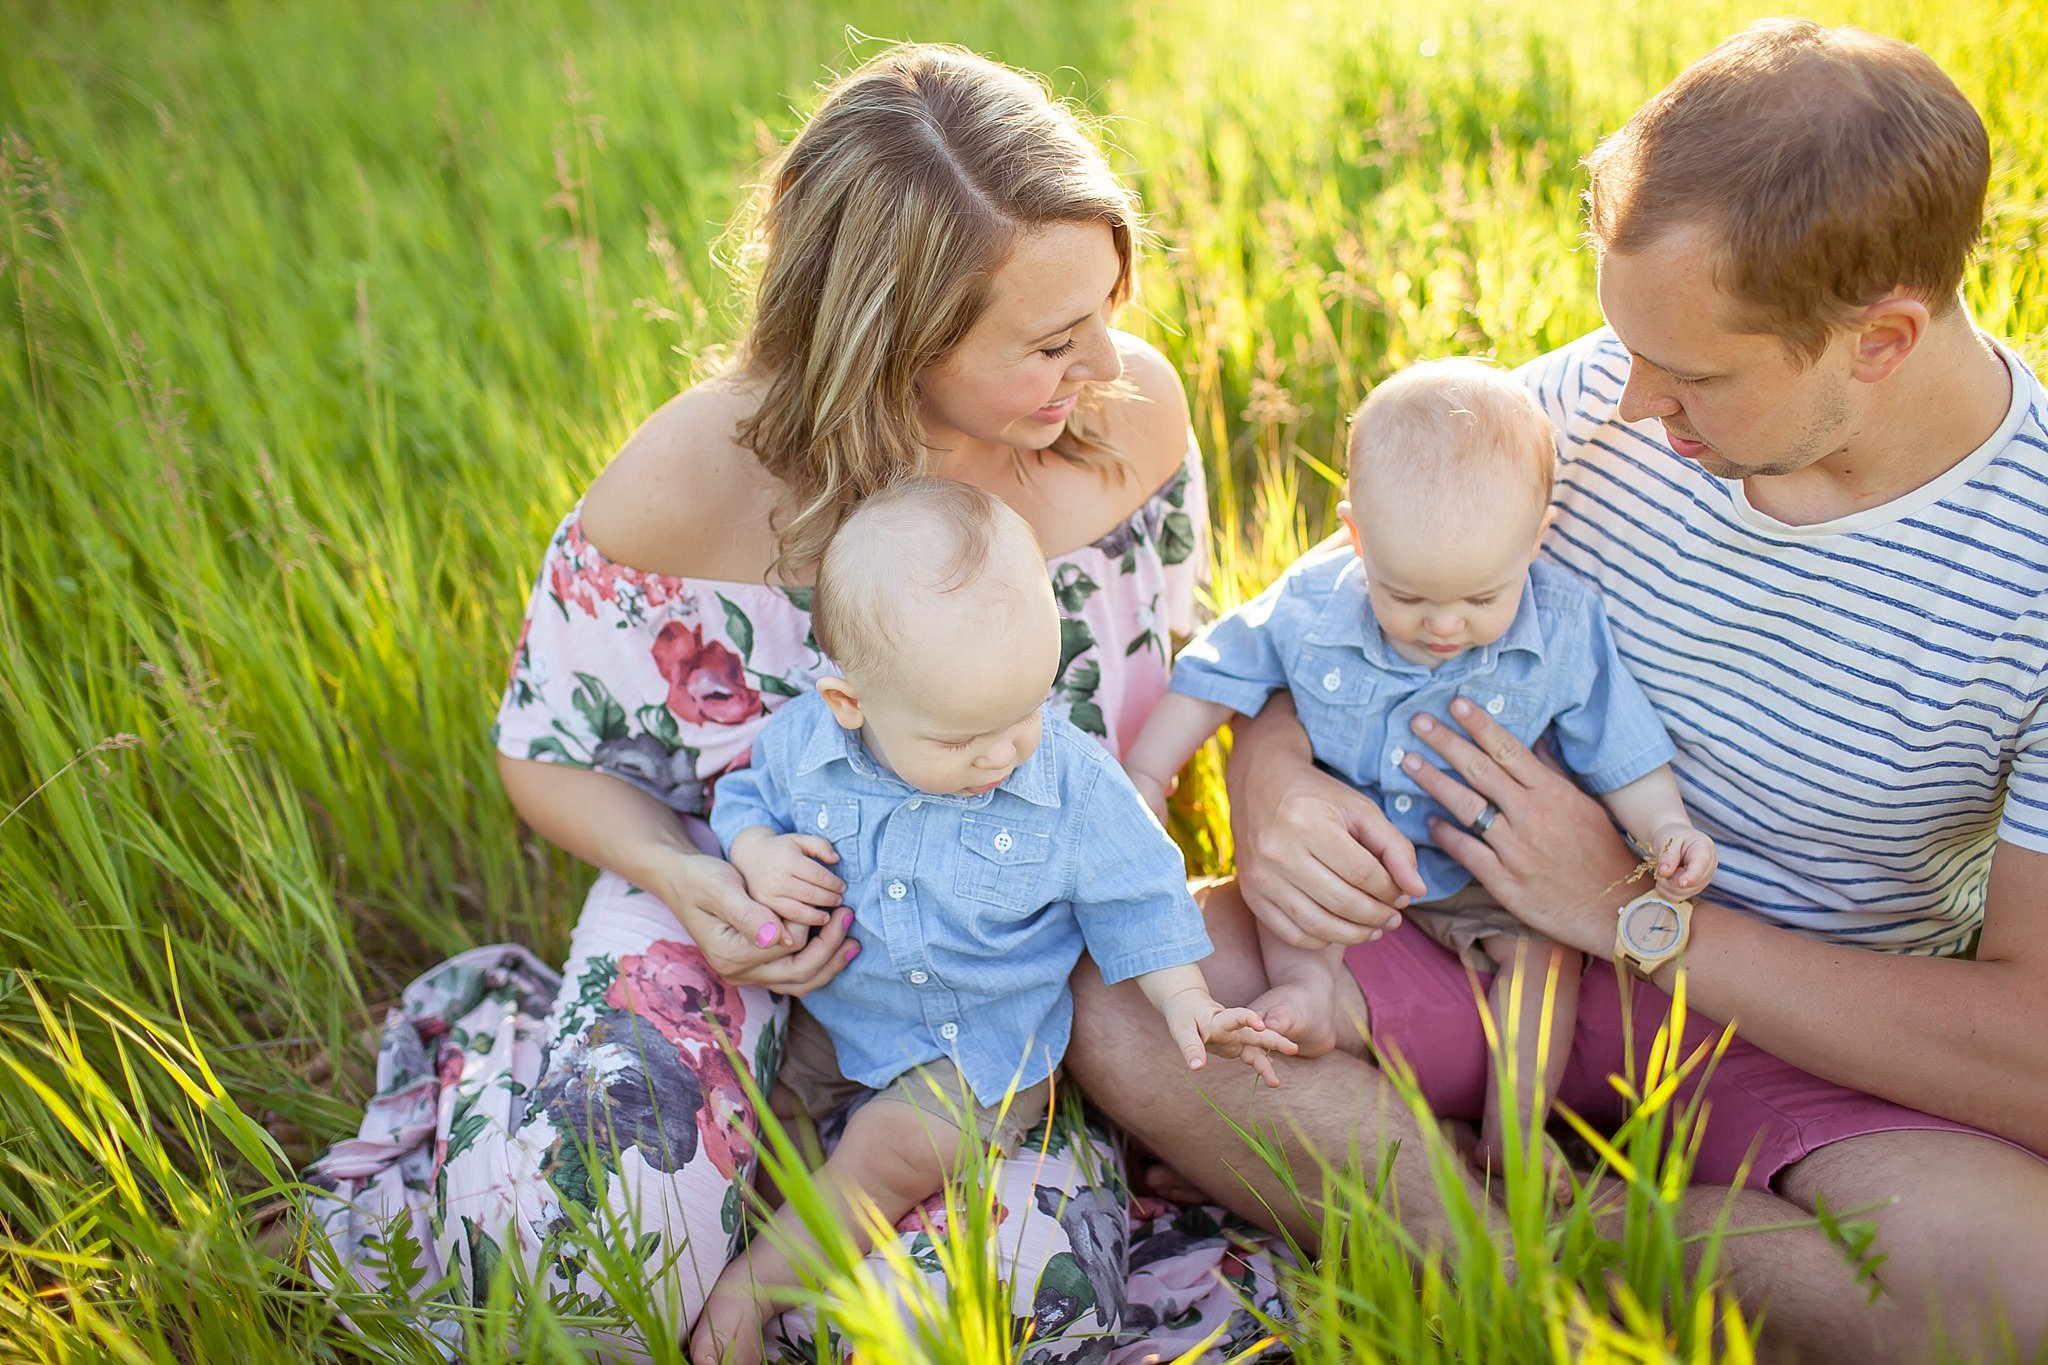 Heckman Family | St. Patrick's Park | South Bend Indiana | One Year Session